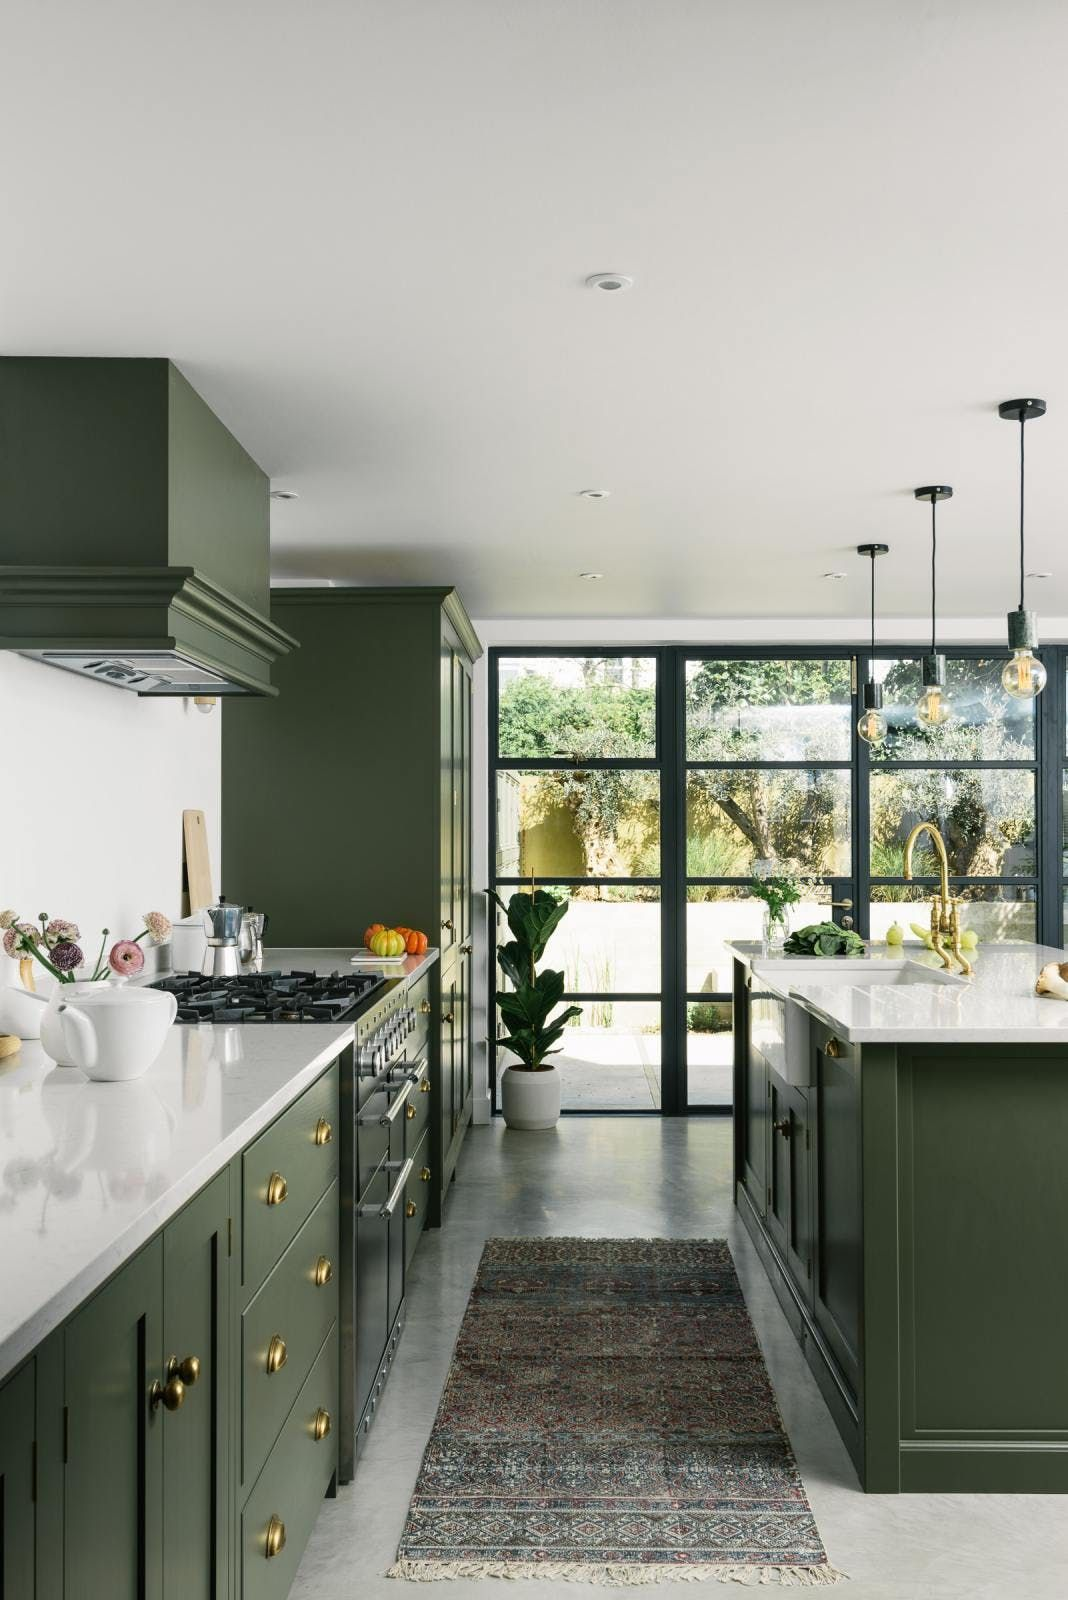 Not Your Granny's Avocado: Green Kitchens Are Making a Comeback #kitchenremodel